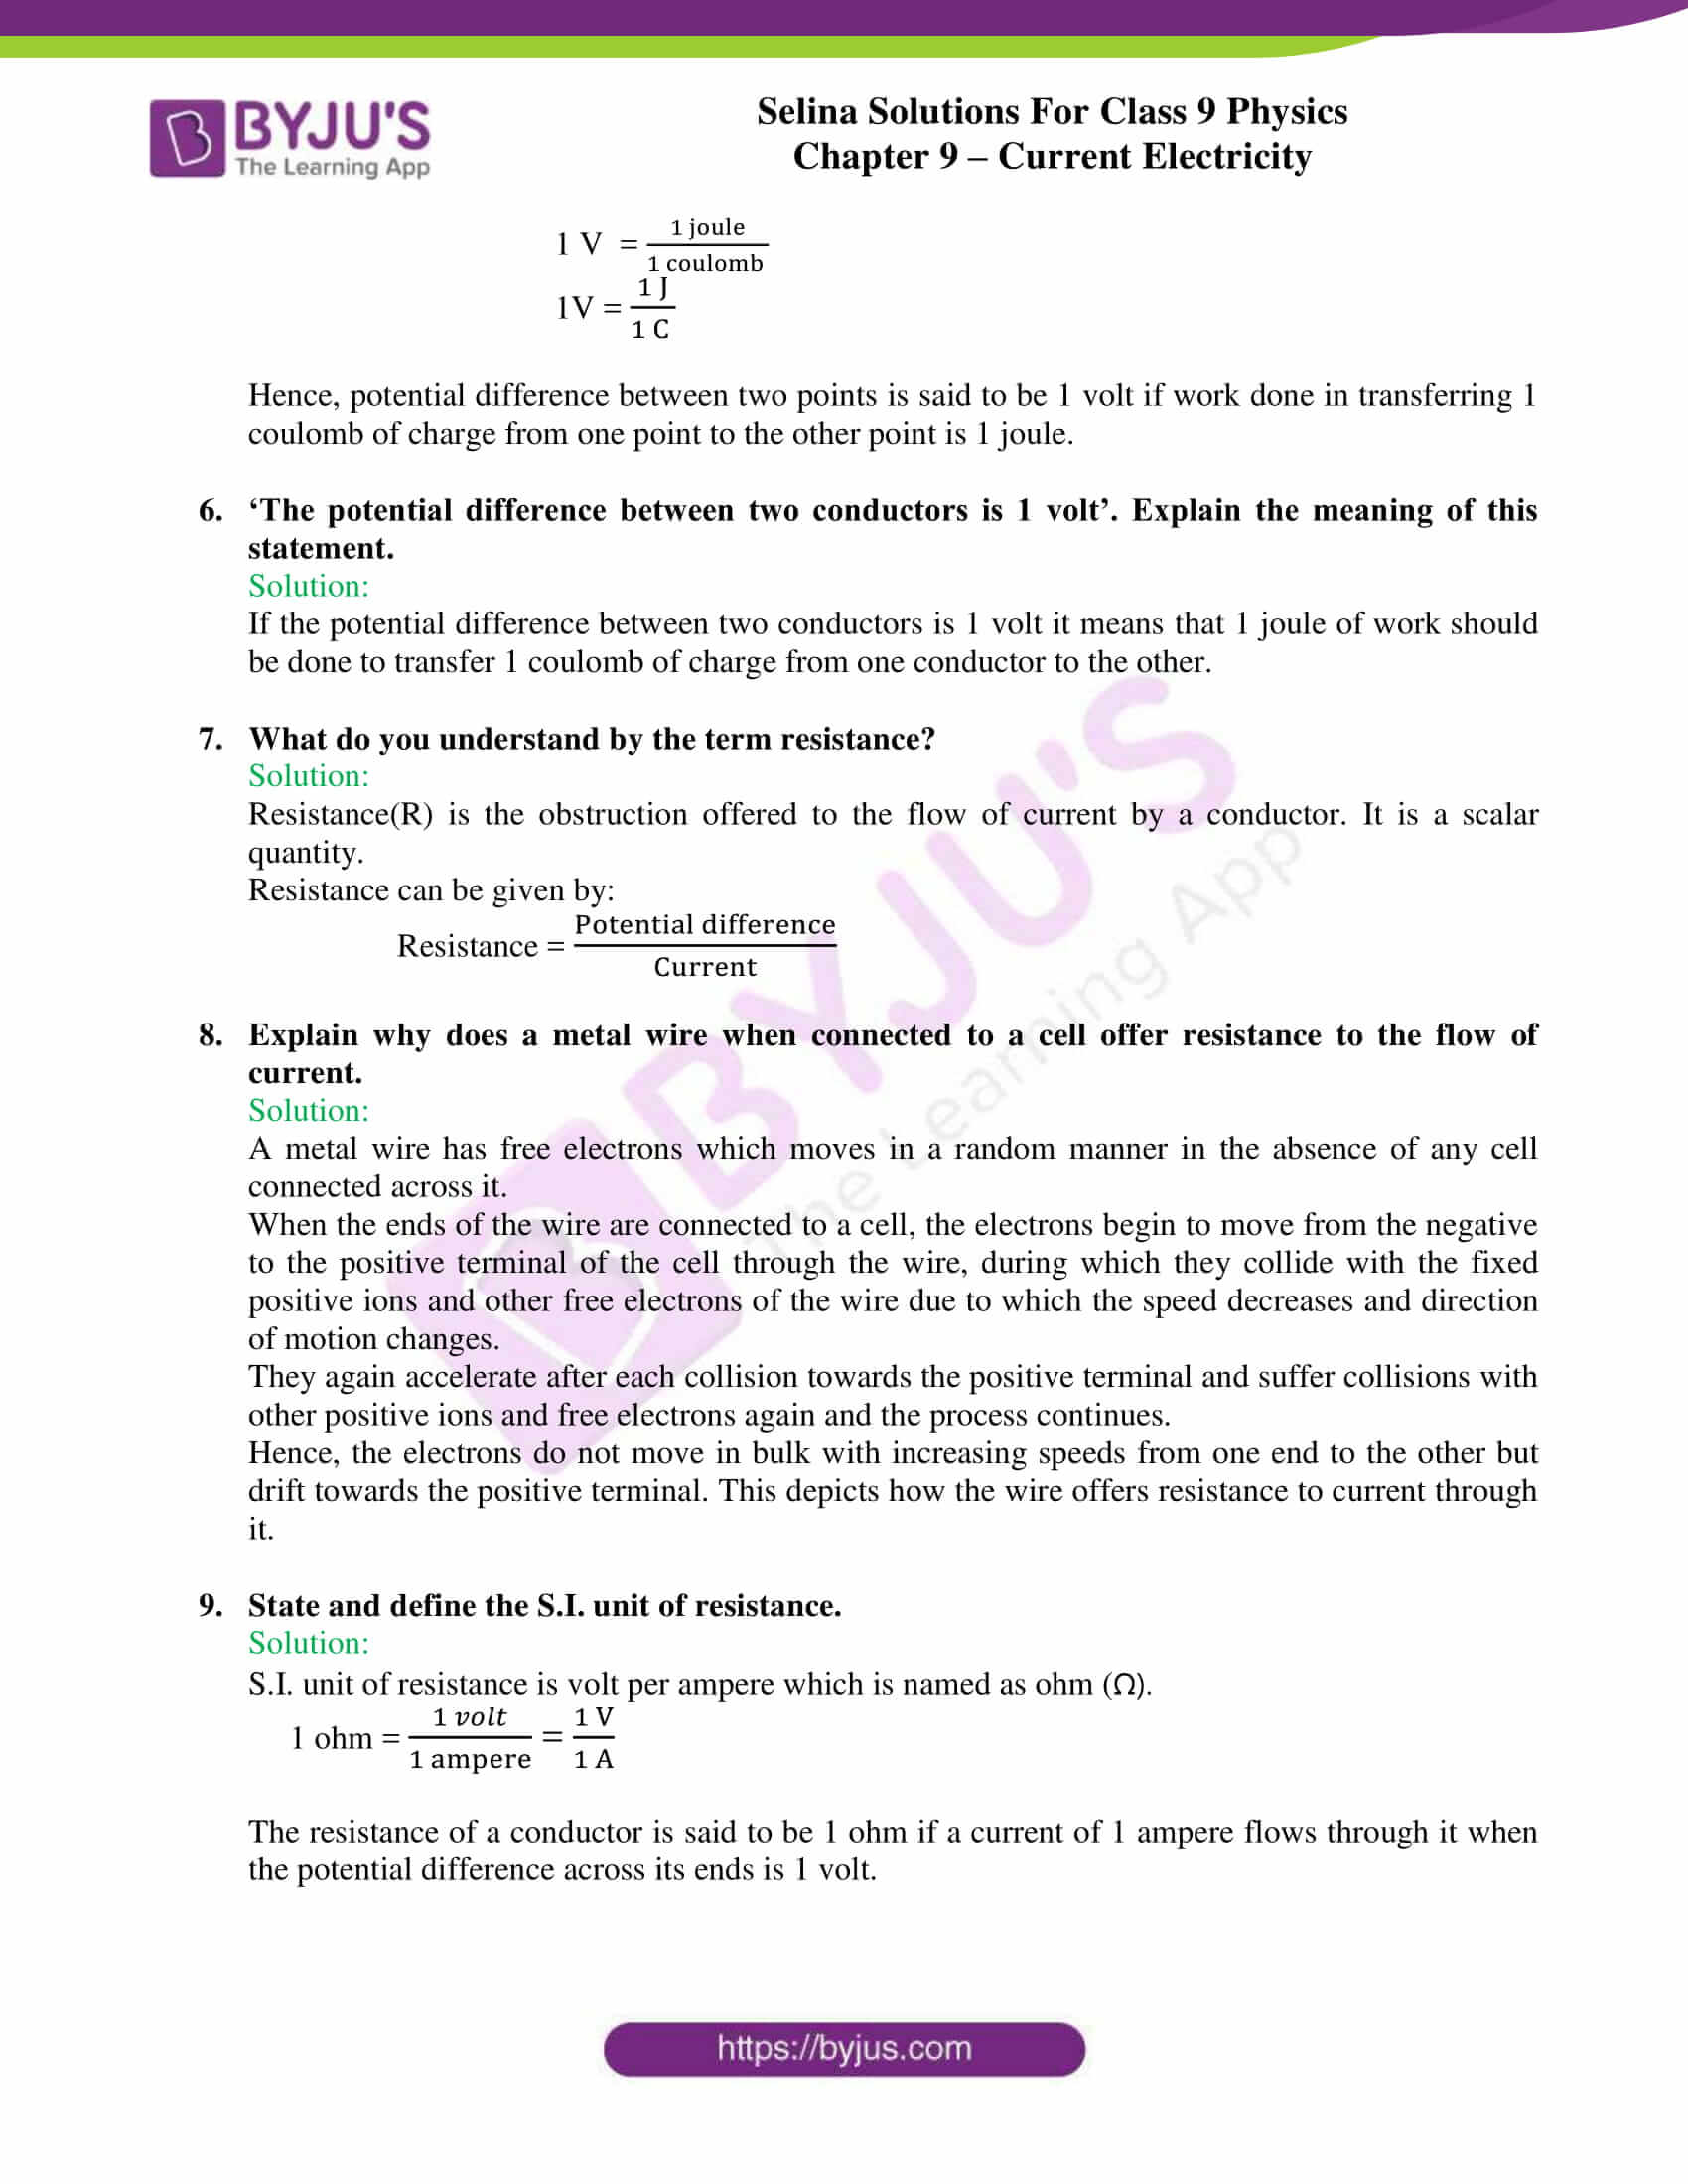 selina solutions class 9 physics chapter 9 Current Electricity part 10